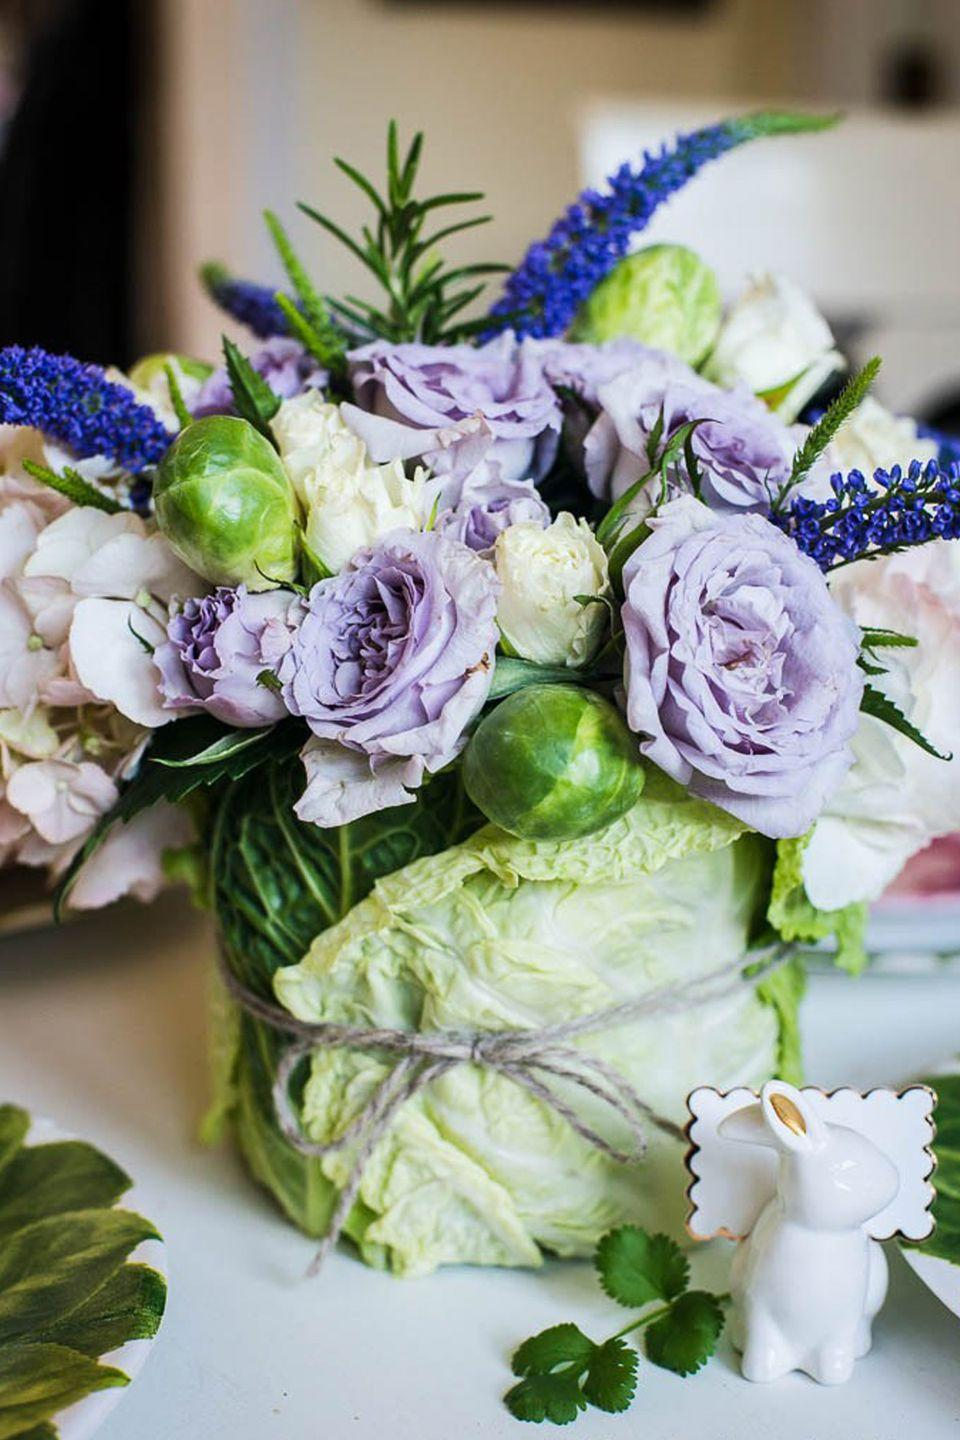 """<p>Both cabbage <em>and </em>brussels sprouts were used to turn a small assortment of purple and white flowers into this unforgettable centerpiece.</p><p><em><a href=""""http://celebratingeverydaylife.com/diy-easter-cabbage-arrangement-tutorial/"""" rel=""""nofollow noopener"""" target=""""_blank"""" data-ylk=""""slk:Get the tutorial at Celebrating Everyday Life »"""" class=""""link rapid-noclick-resp"""">Get the tutorial at Celebrating Everyday Life »</a></em></p><p><strong><em>Seletti Melania Hybrid Vase, $215</em></strong> <a class=""""link rapid-noclick-resp"""" href=""""https://go.redirectingat.com?id=74968X1596630&url=https%3A%2F%2Fwww.2modern.com%2Fproducts%2Fhybrid-melania-vase&sref=https%3A%2F%2Fwww.housebeautiful.com%2Fentertaining%2Fflower-arrangements%2Fg19409803%2Feaster-flower-arrangements%2F"""" rel=""""nofollow noopener"""" target=""""_blank"""" data-ylk=""""slk:BUY NOW"""">BUY NOW</a></p>"""